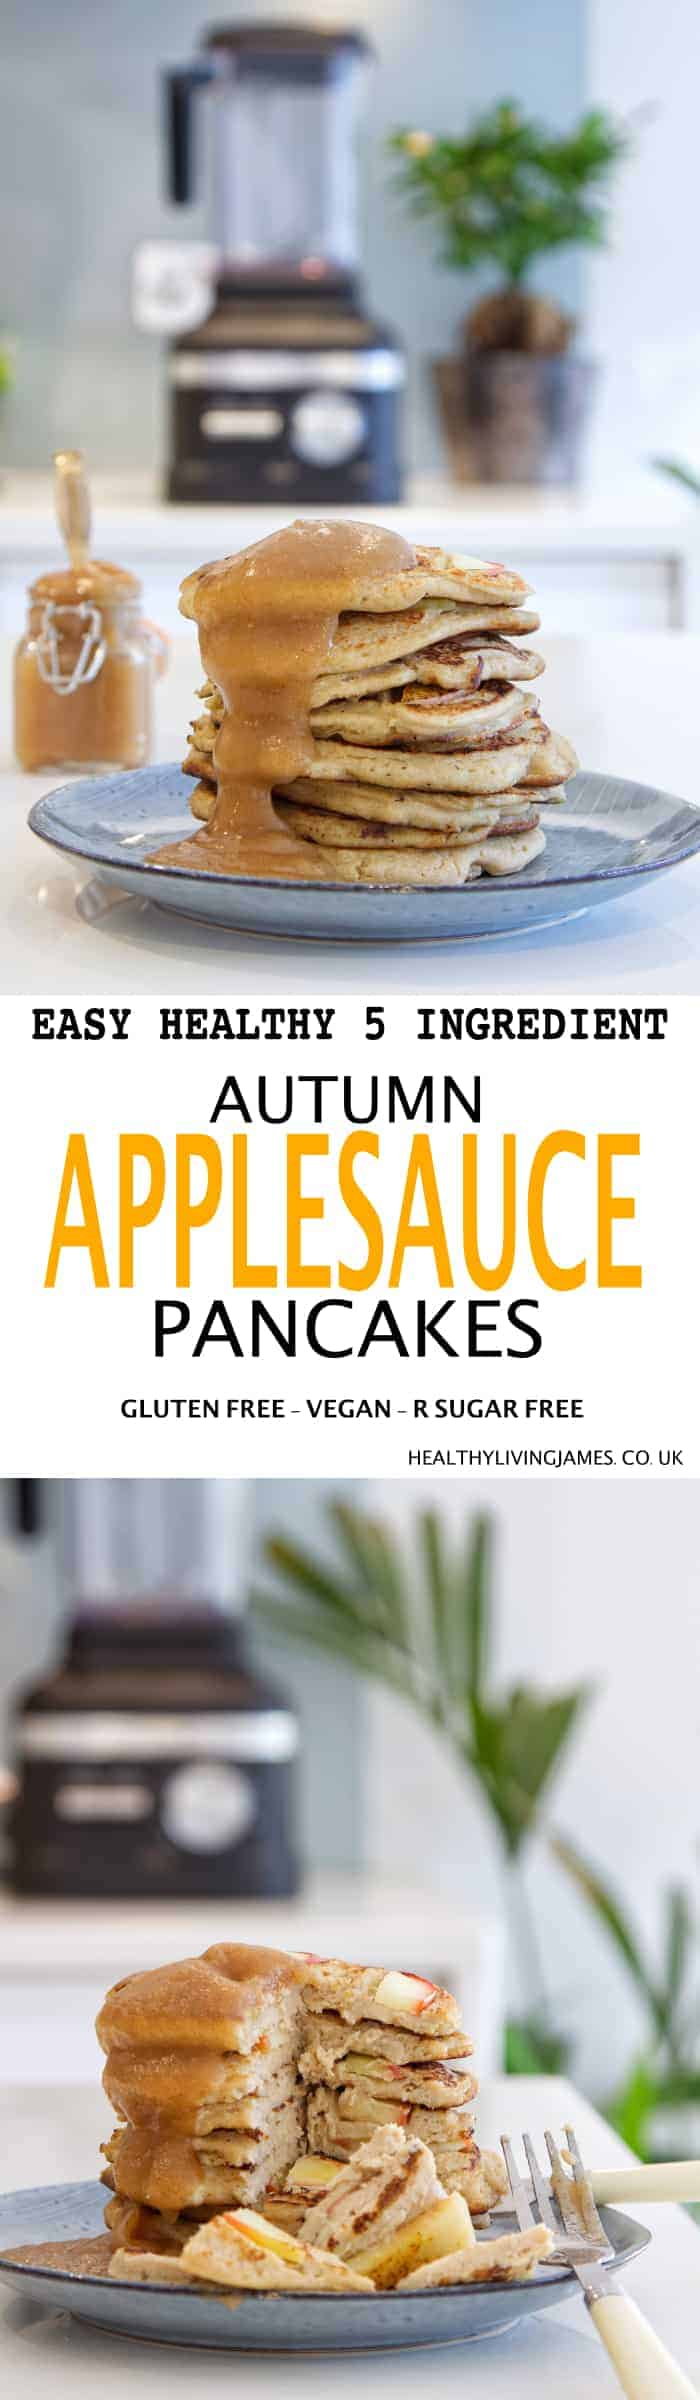 Autumn AppleSauce Pancakes Pin